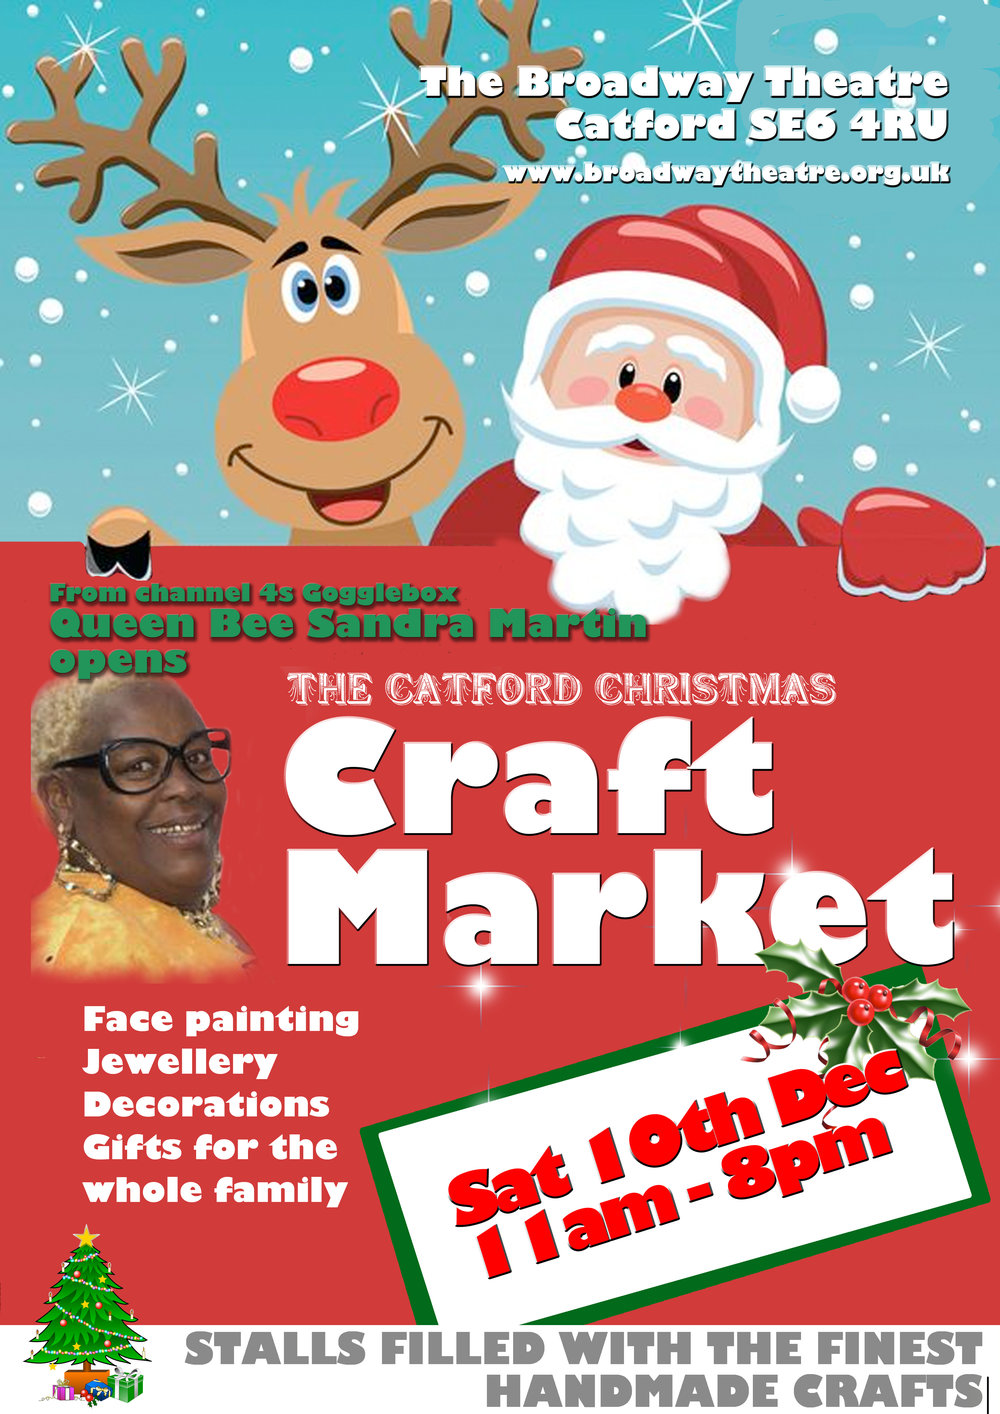 Catford Christmas Market 2016